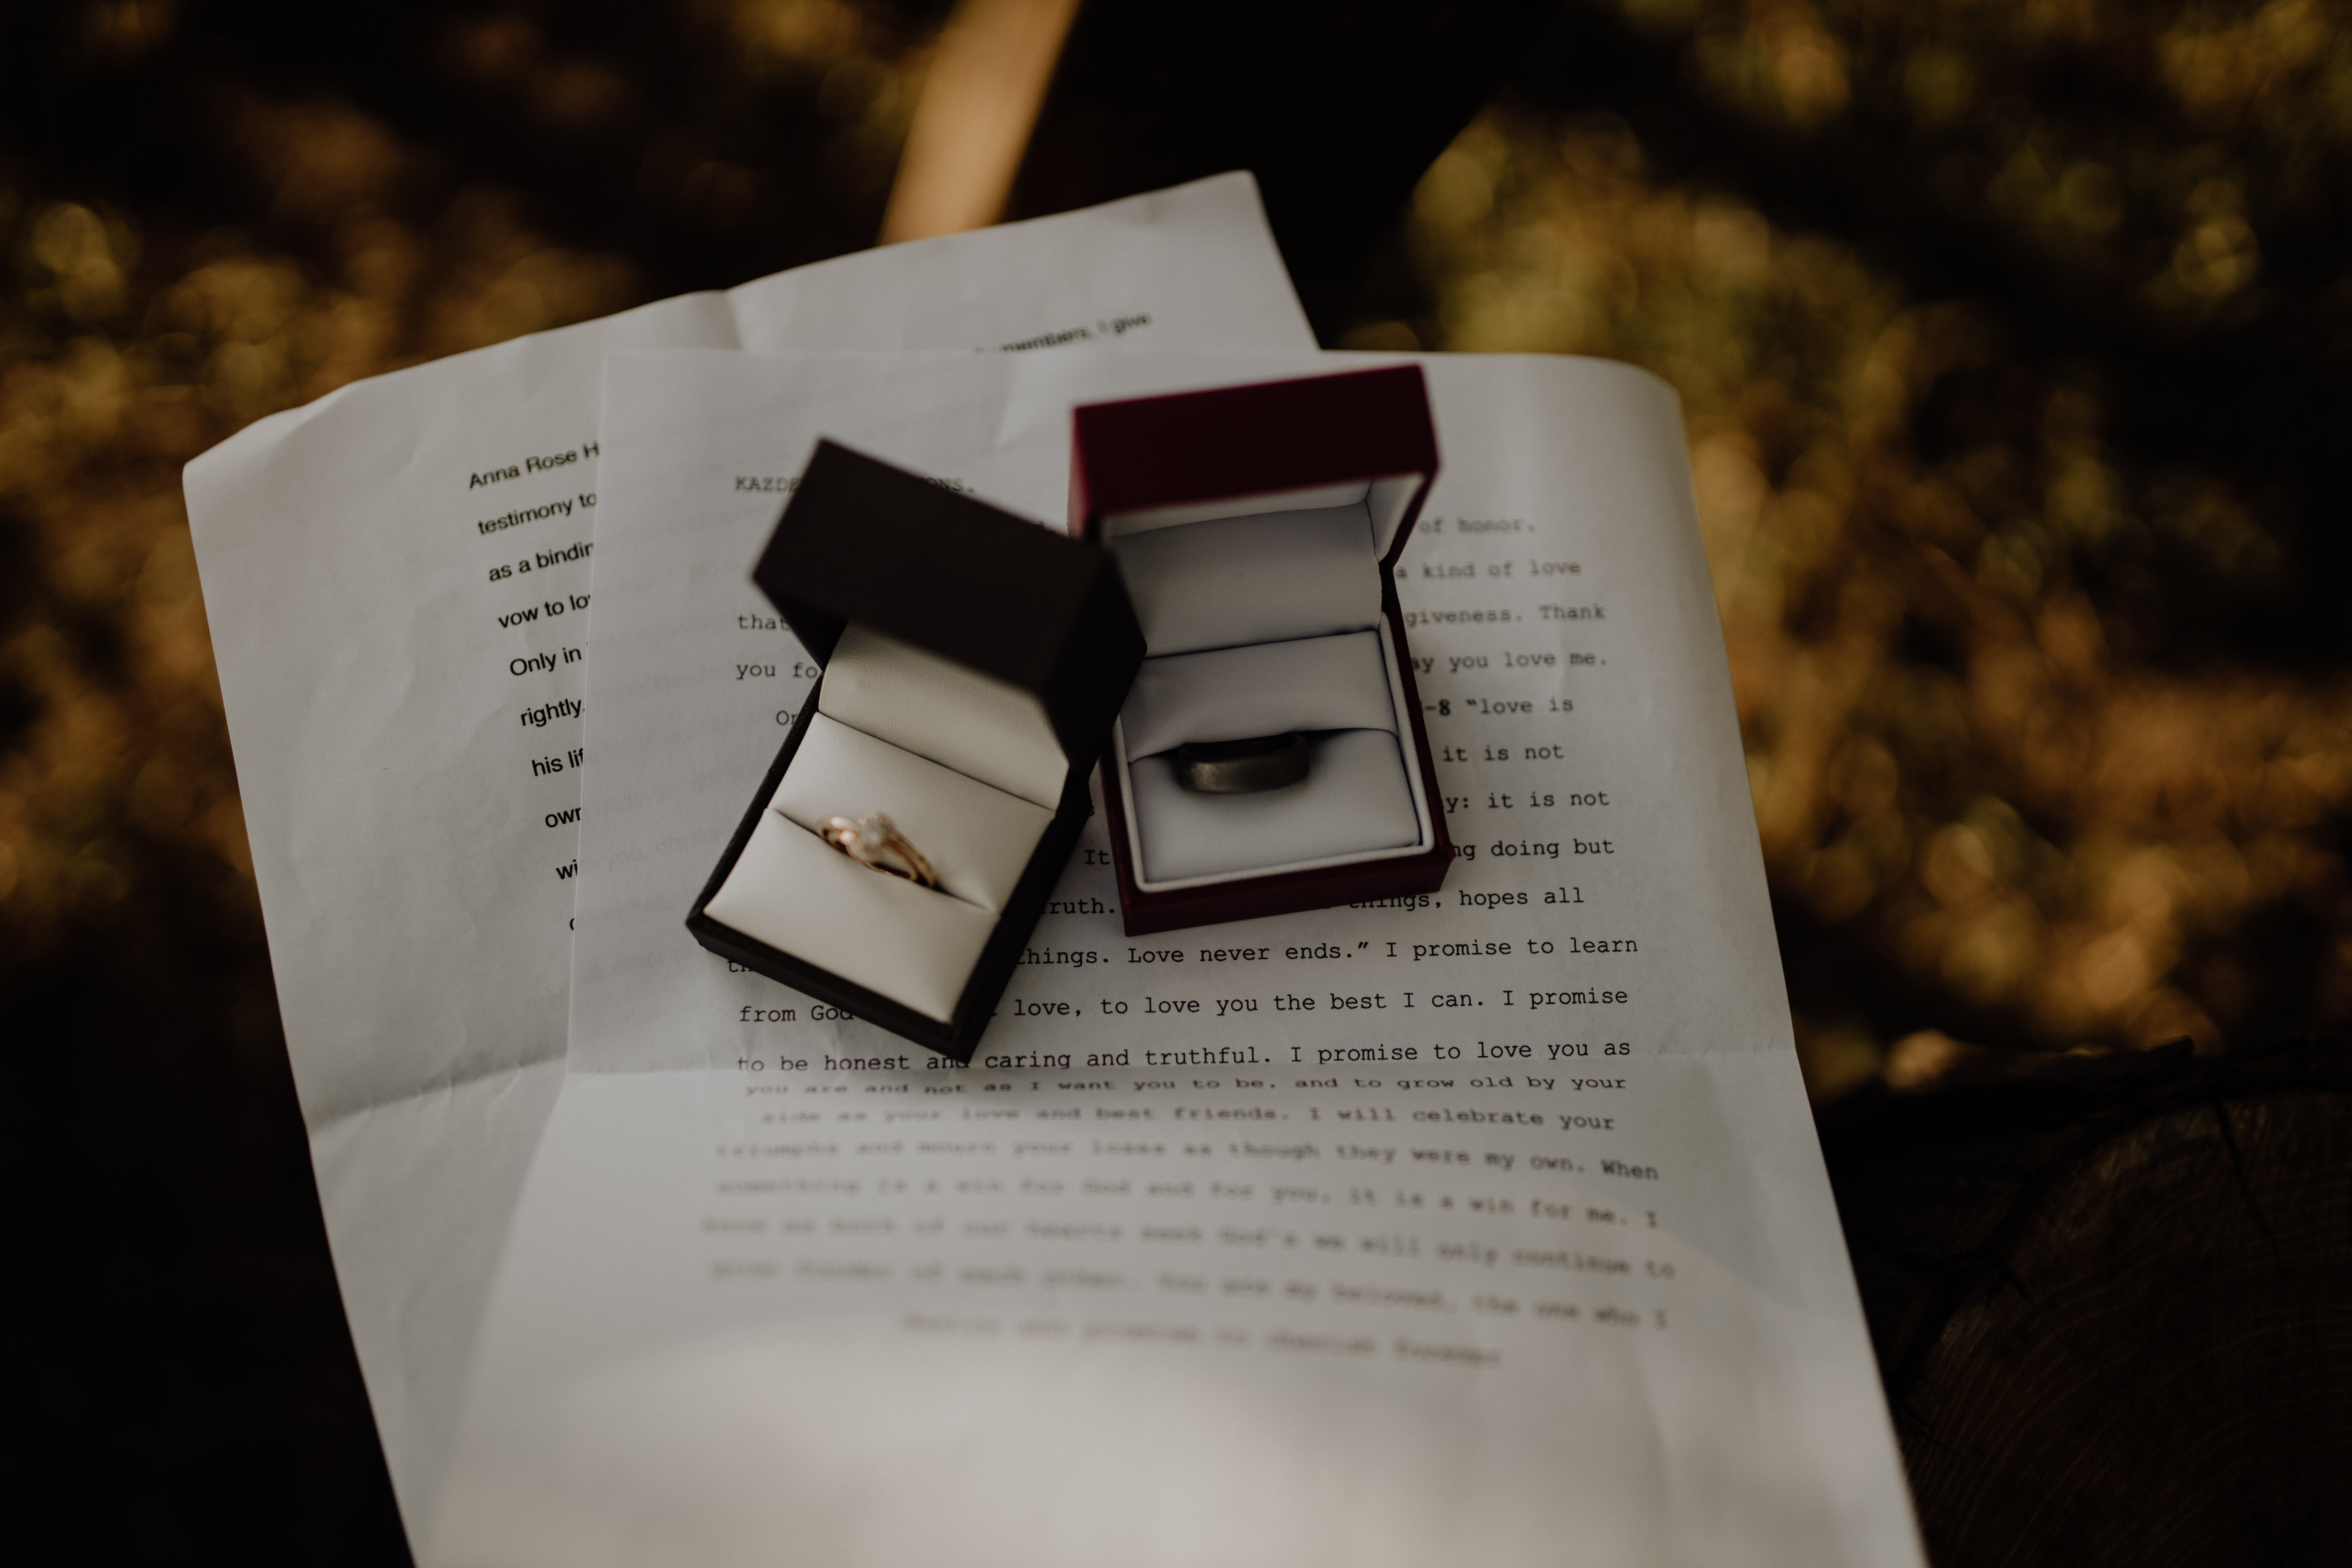 Two boxes with wedding rings sitting on sheets of paper with typed text